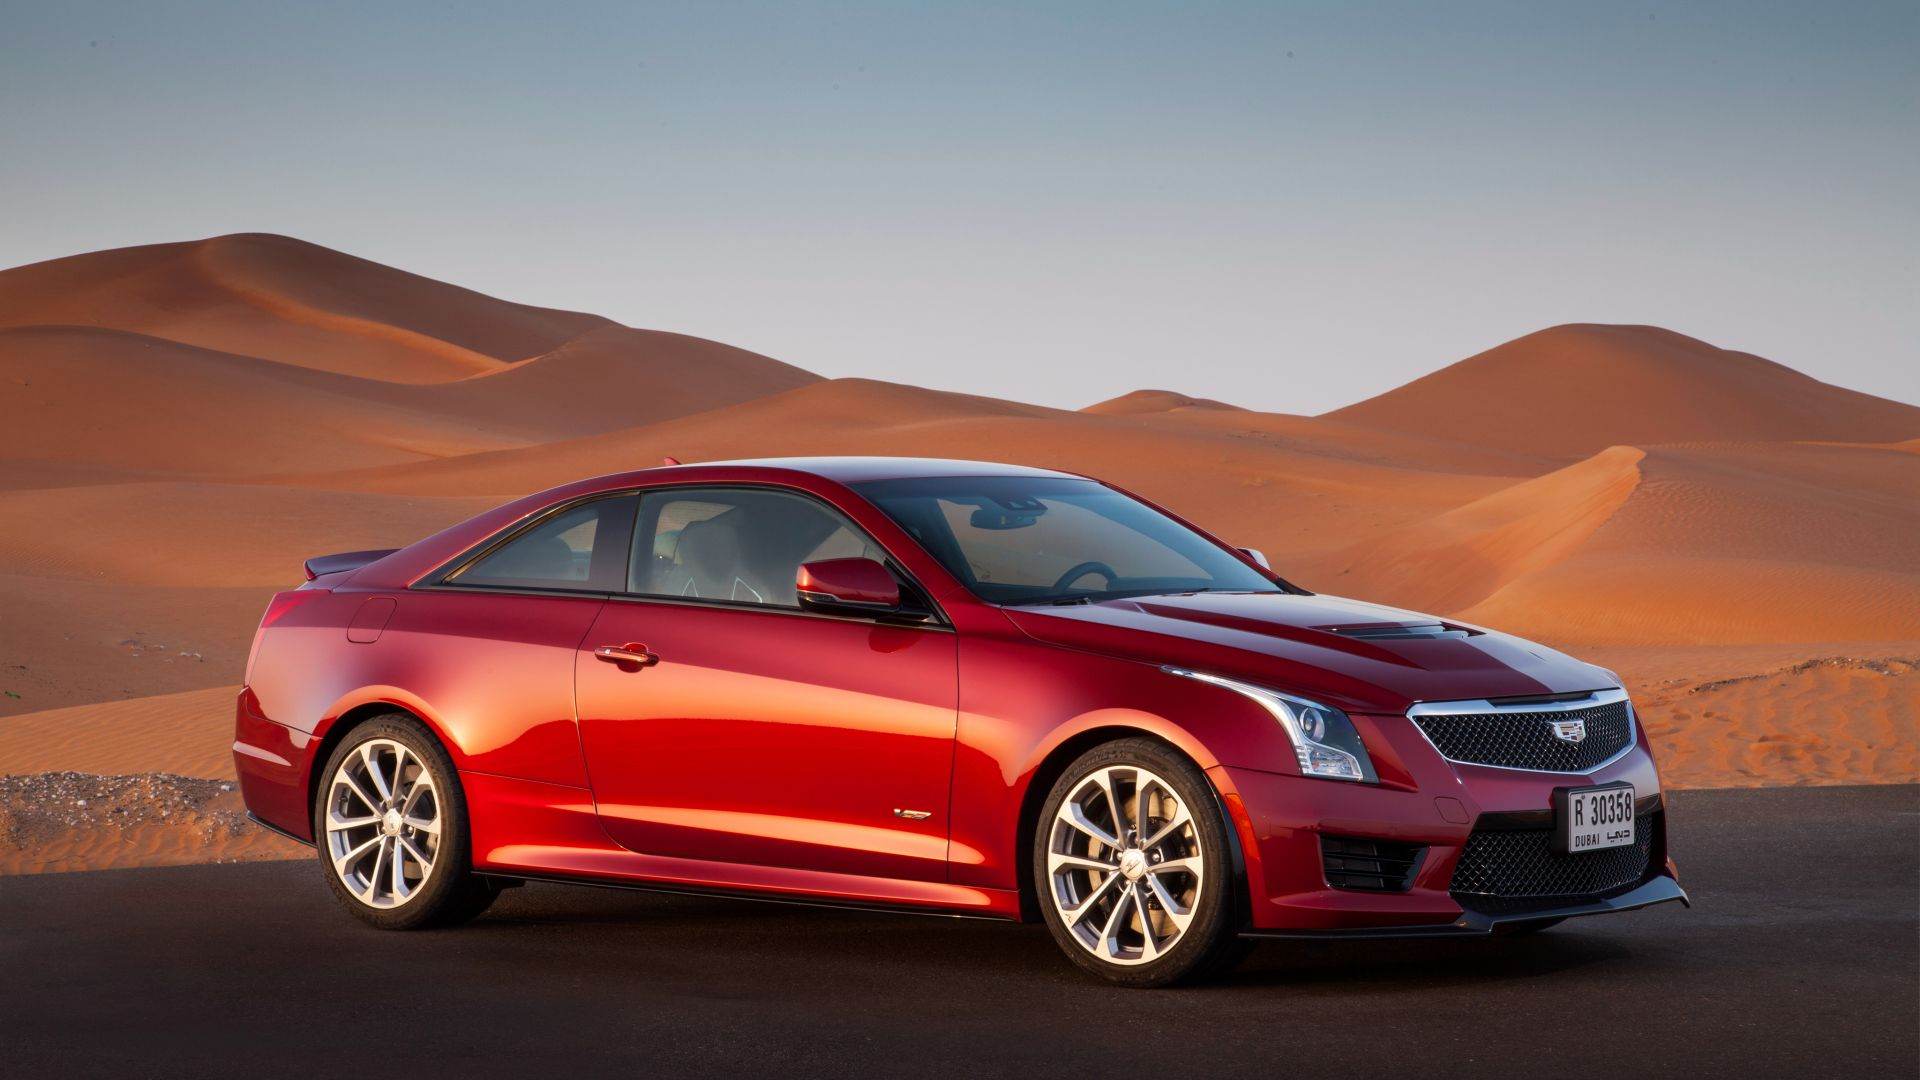 Cadillac Ats Coupe >> Wallpaper Cadillac ATS-V, concept, sports car, Frankfurt 2015, Cars & Bikes #7590